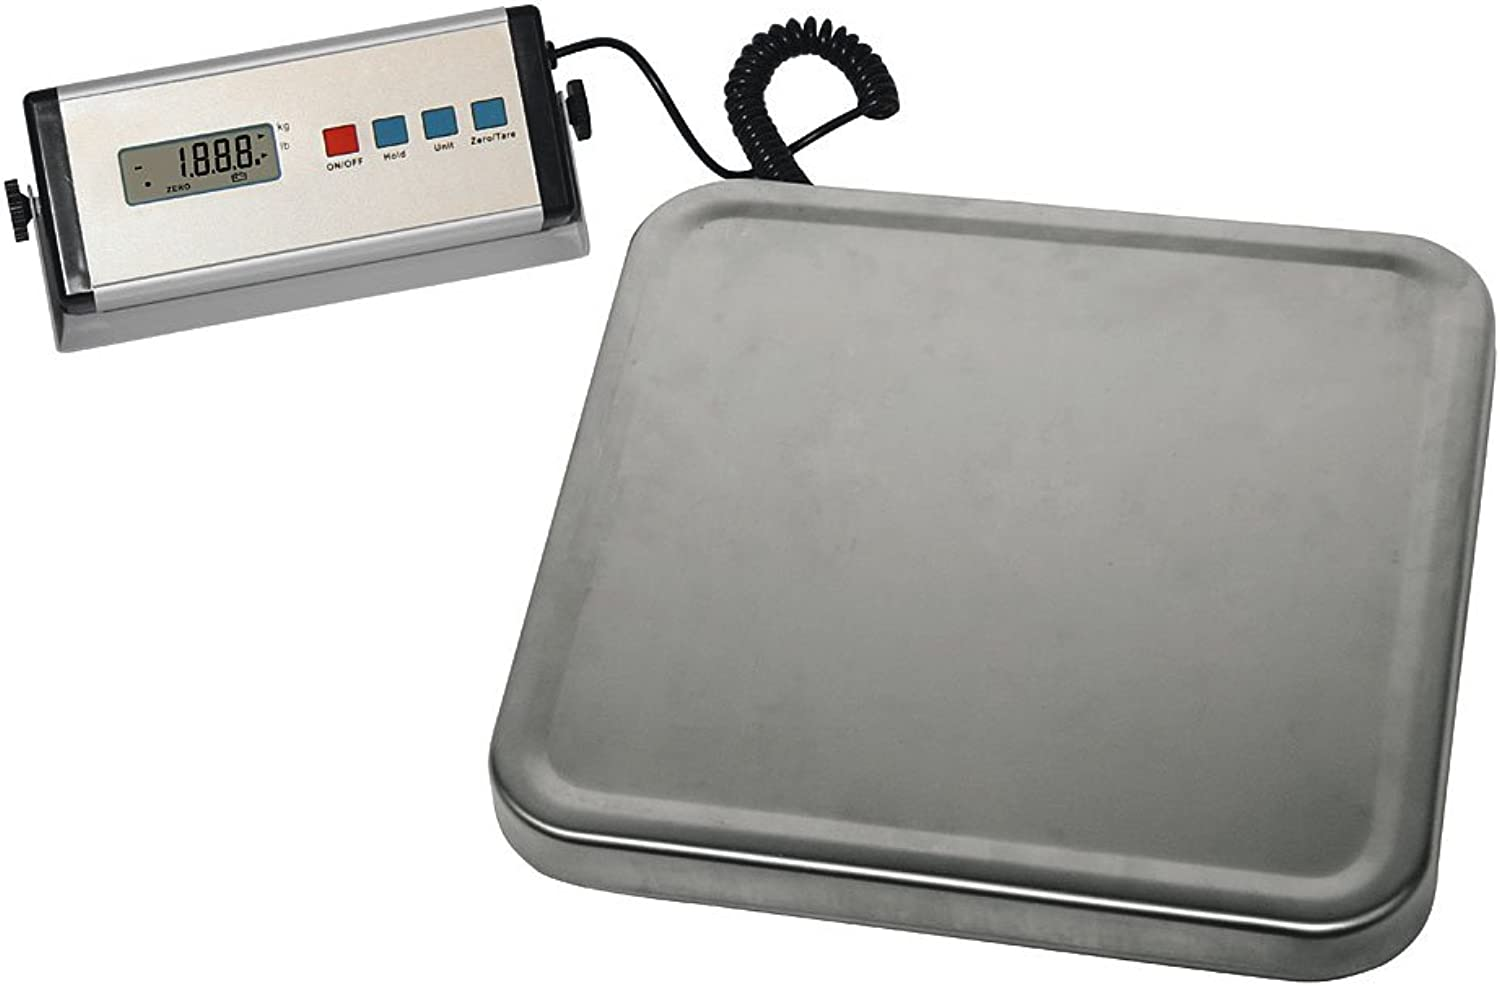 Kerbl 29924 Weighing Scales up to 150 kg